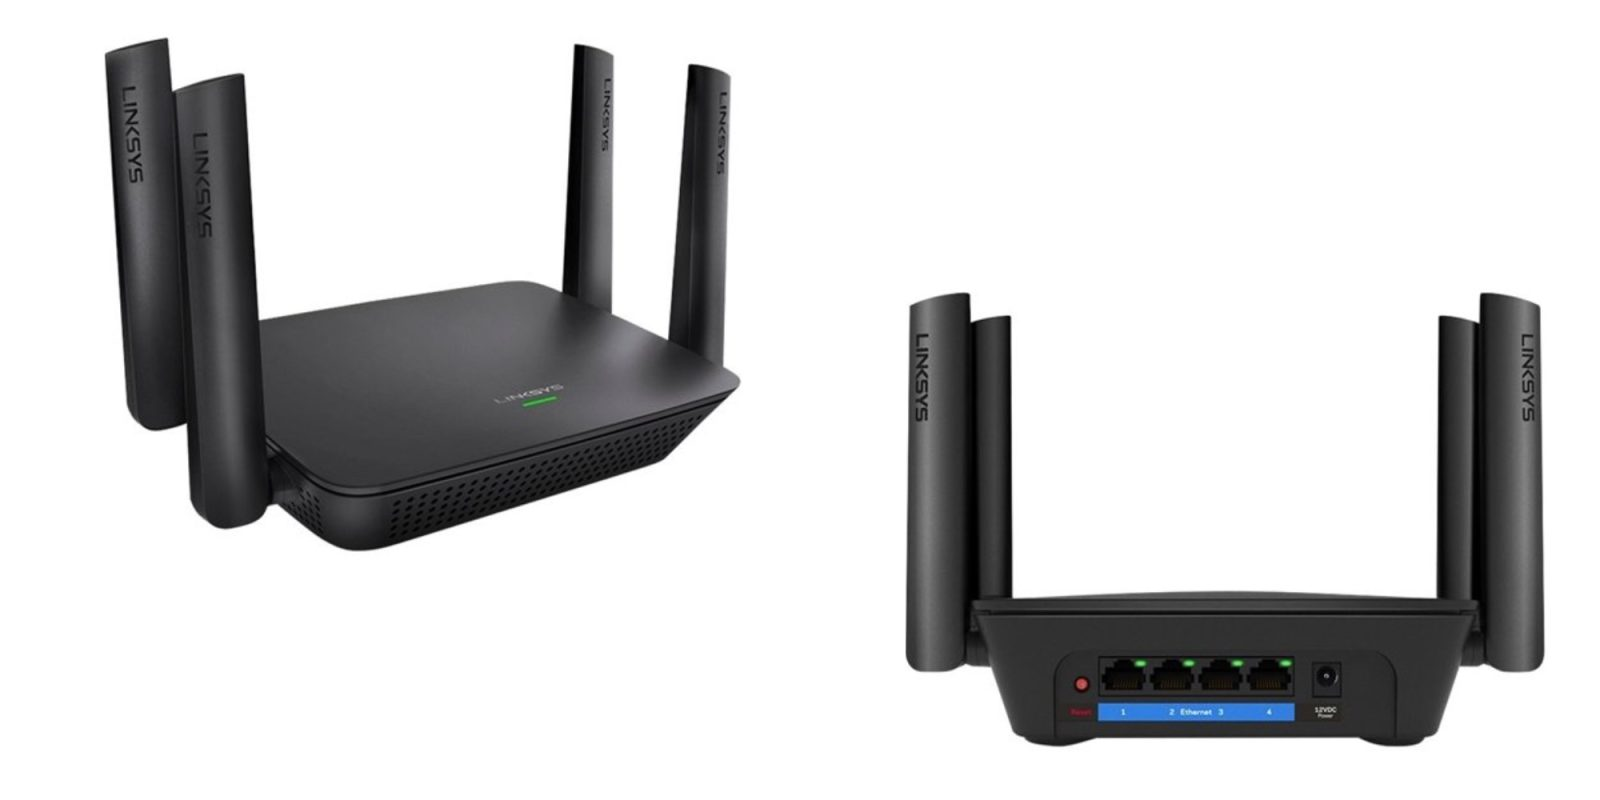 Linksys' $90 802.11ac Wi-Fi Extender has a 10,000 sq. foot range (30% off)